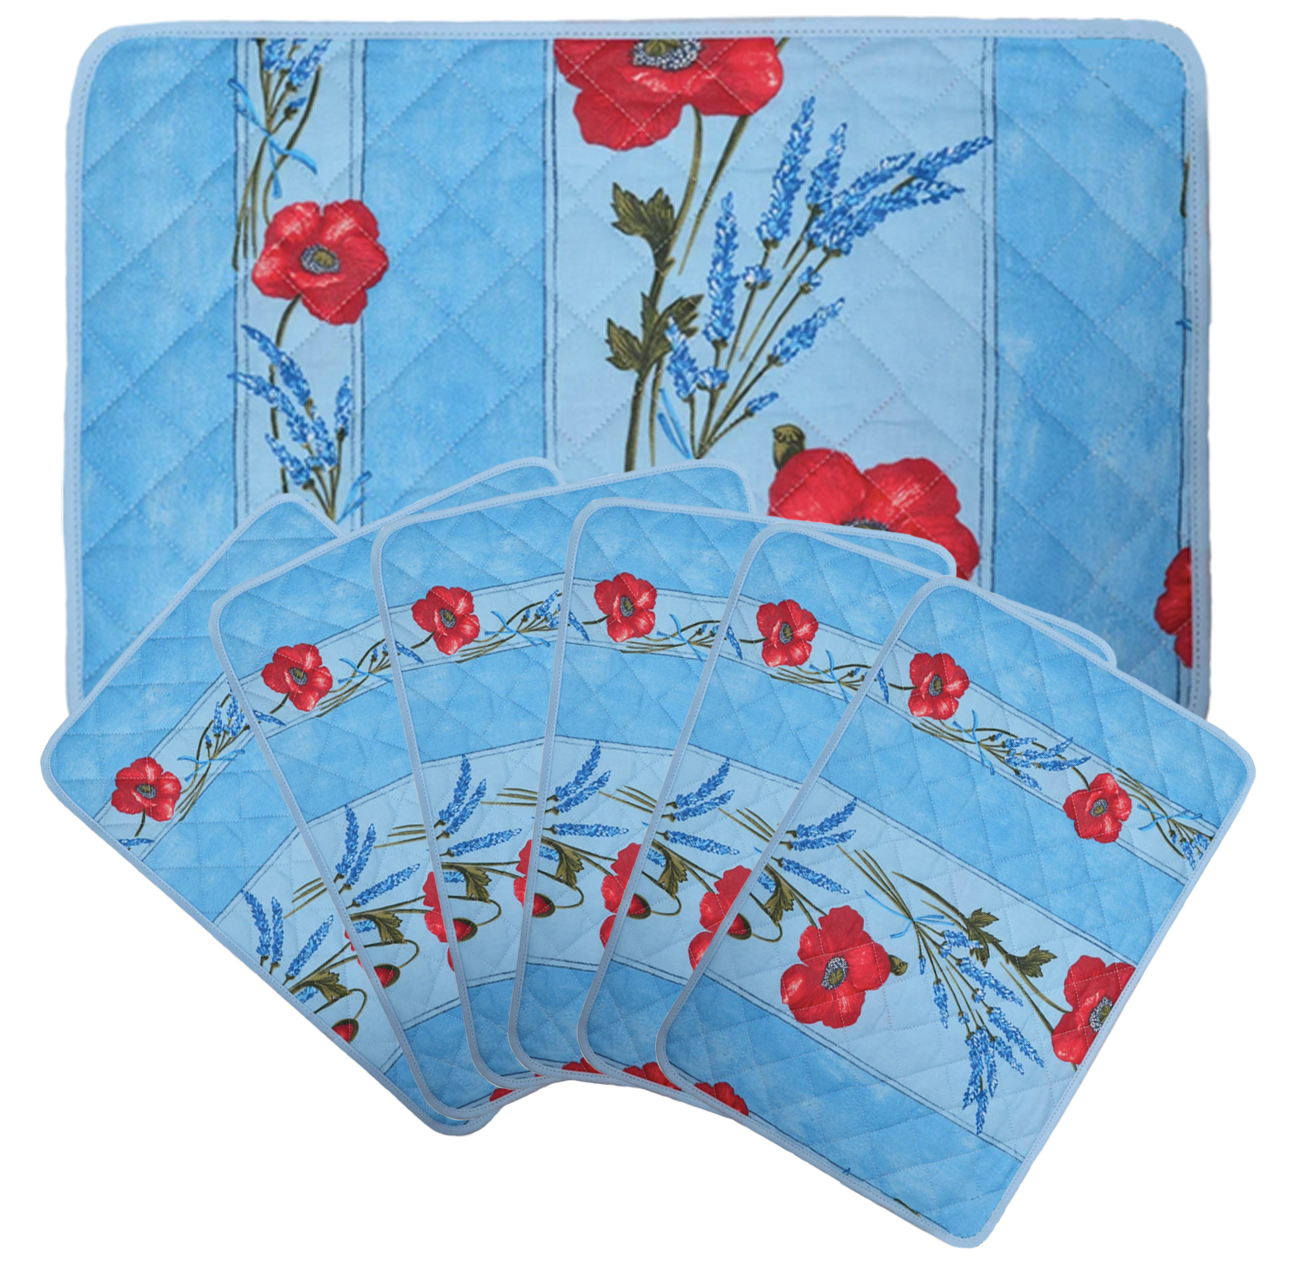 """French Acrylic Coated Placemats Collection """"Coquelicot"""" Light Blue: Poppies & Lavender Motif, Size 17"""" x 11"""", Price $94.95 for a Set of 6"""